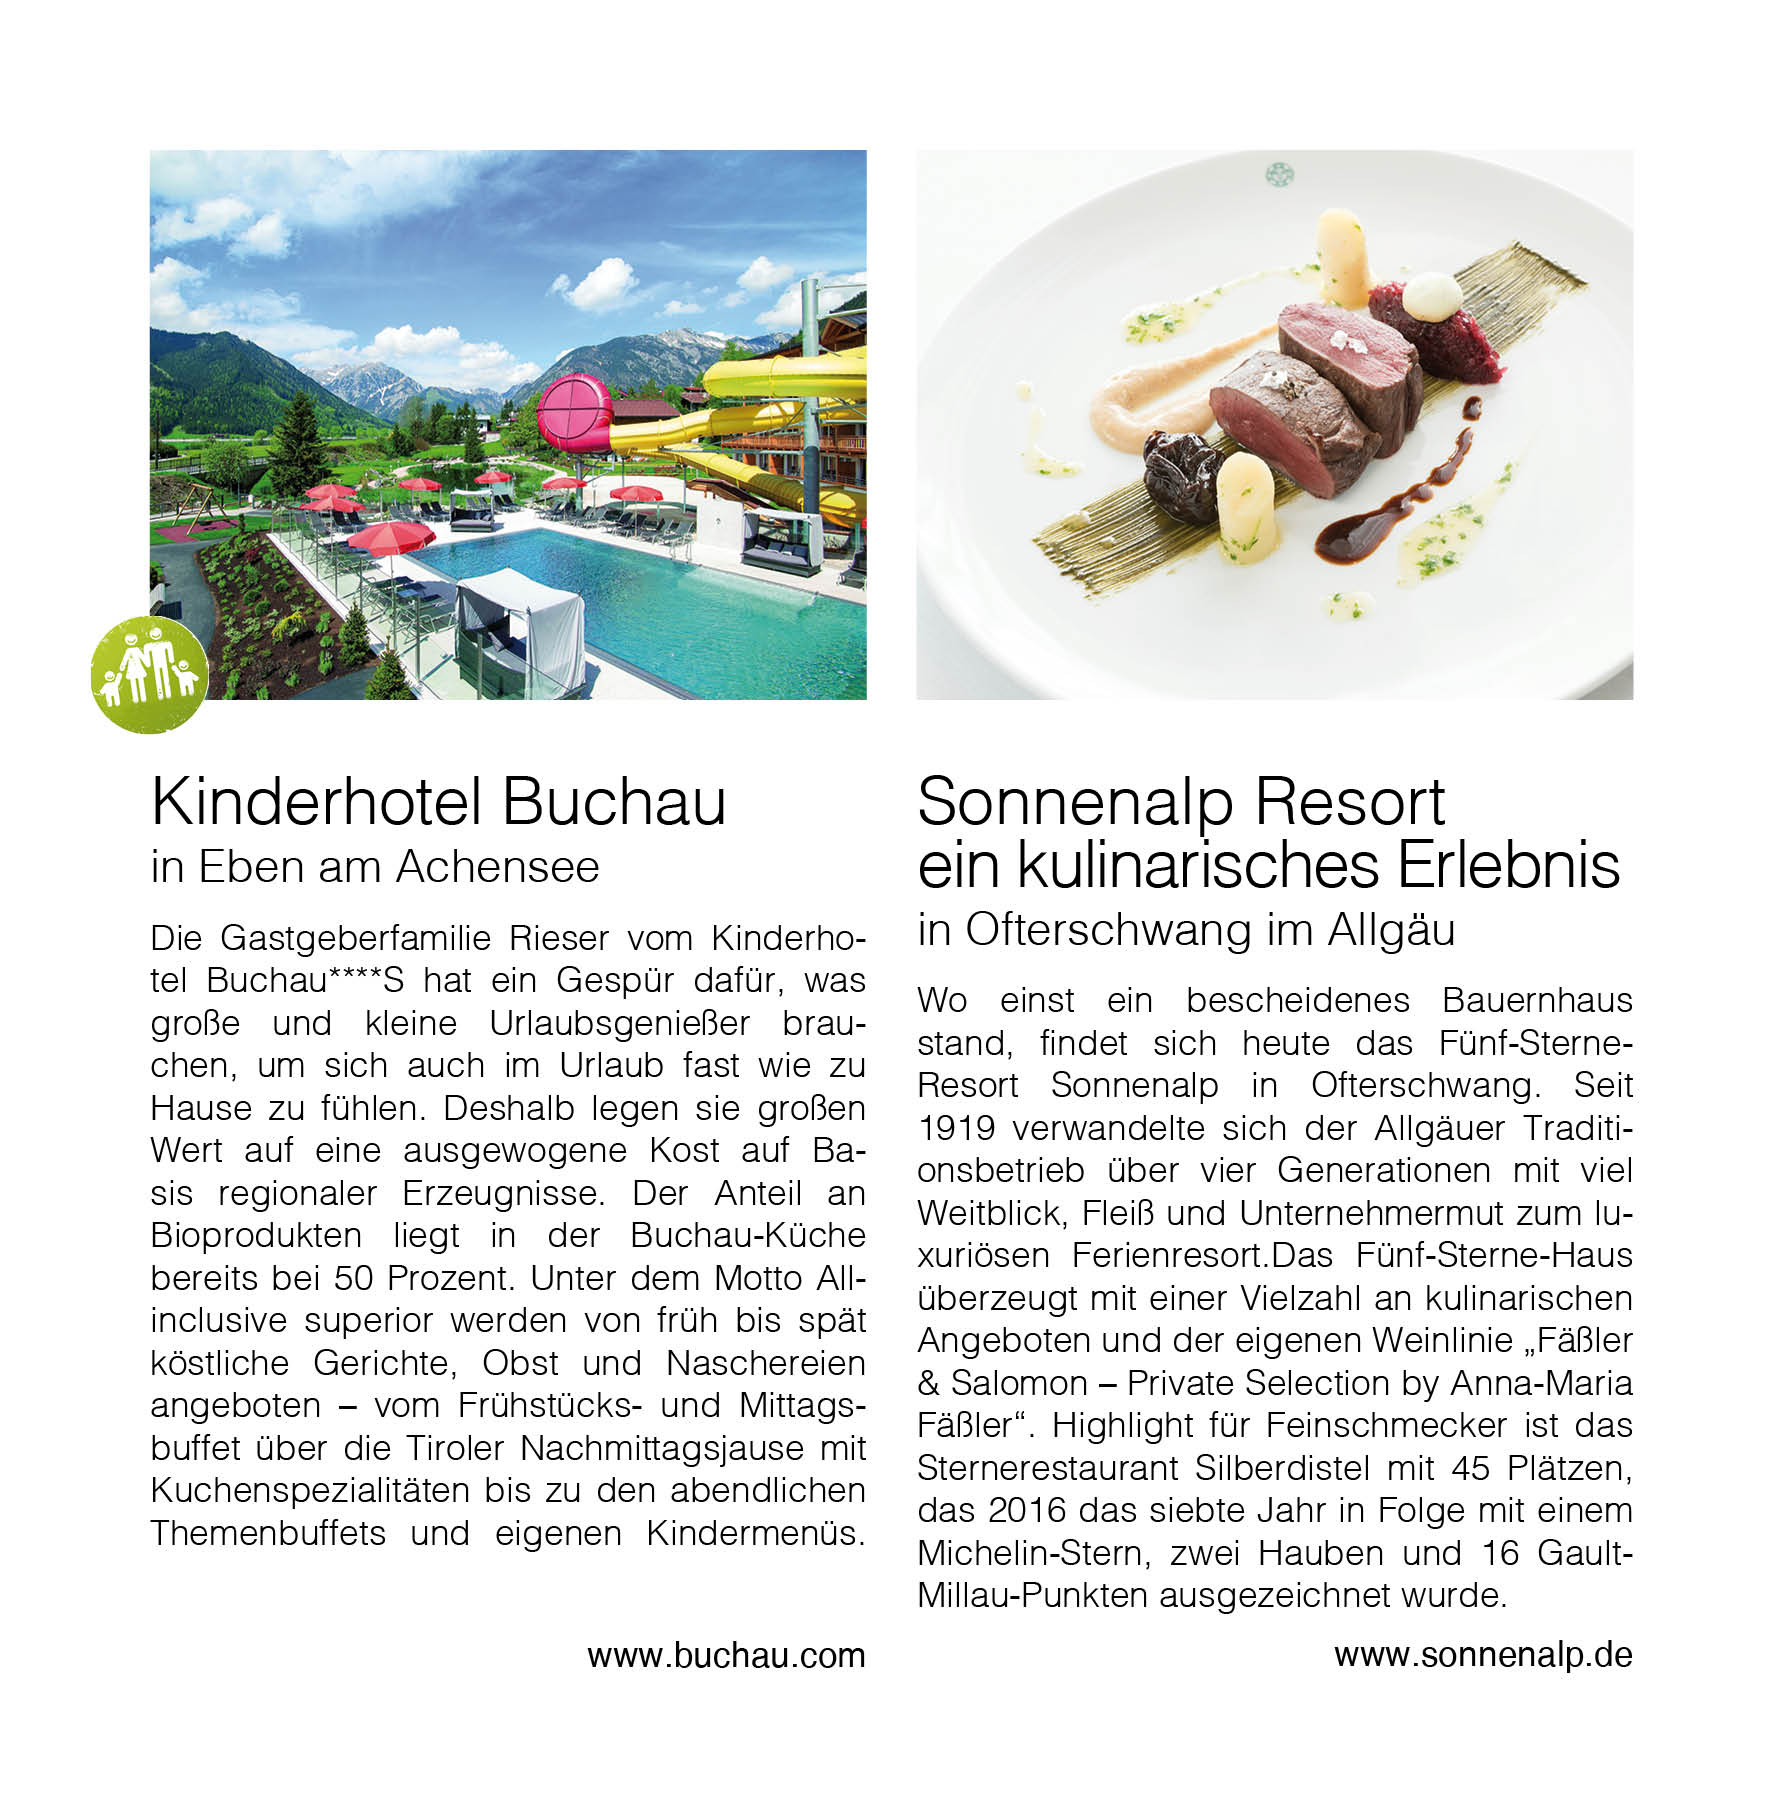 https://www.berge-exclusiv.de/wp-content/uploads/Pocket-Guide-18041640.jpg